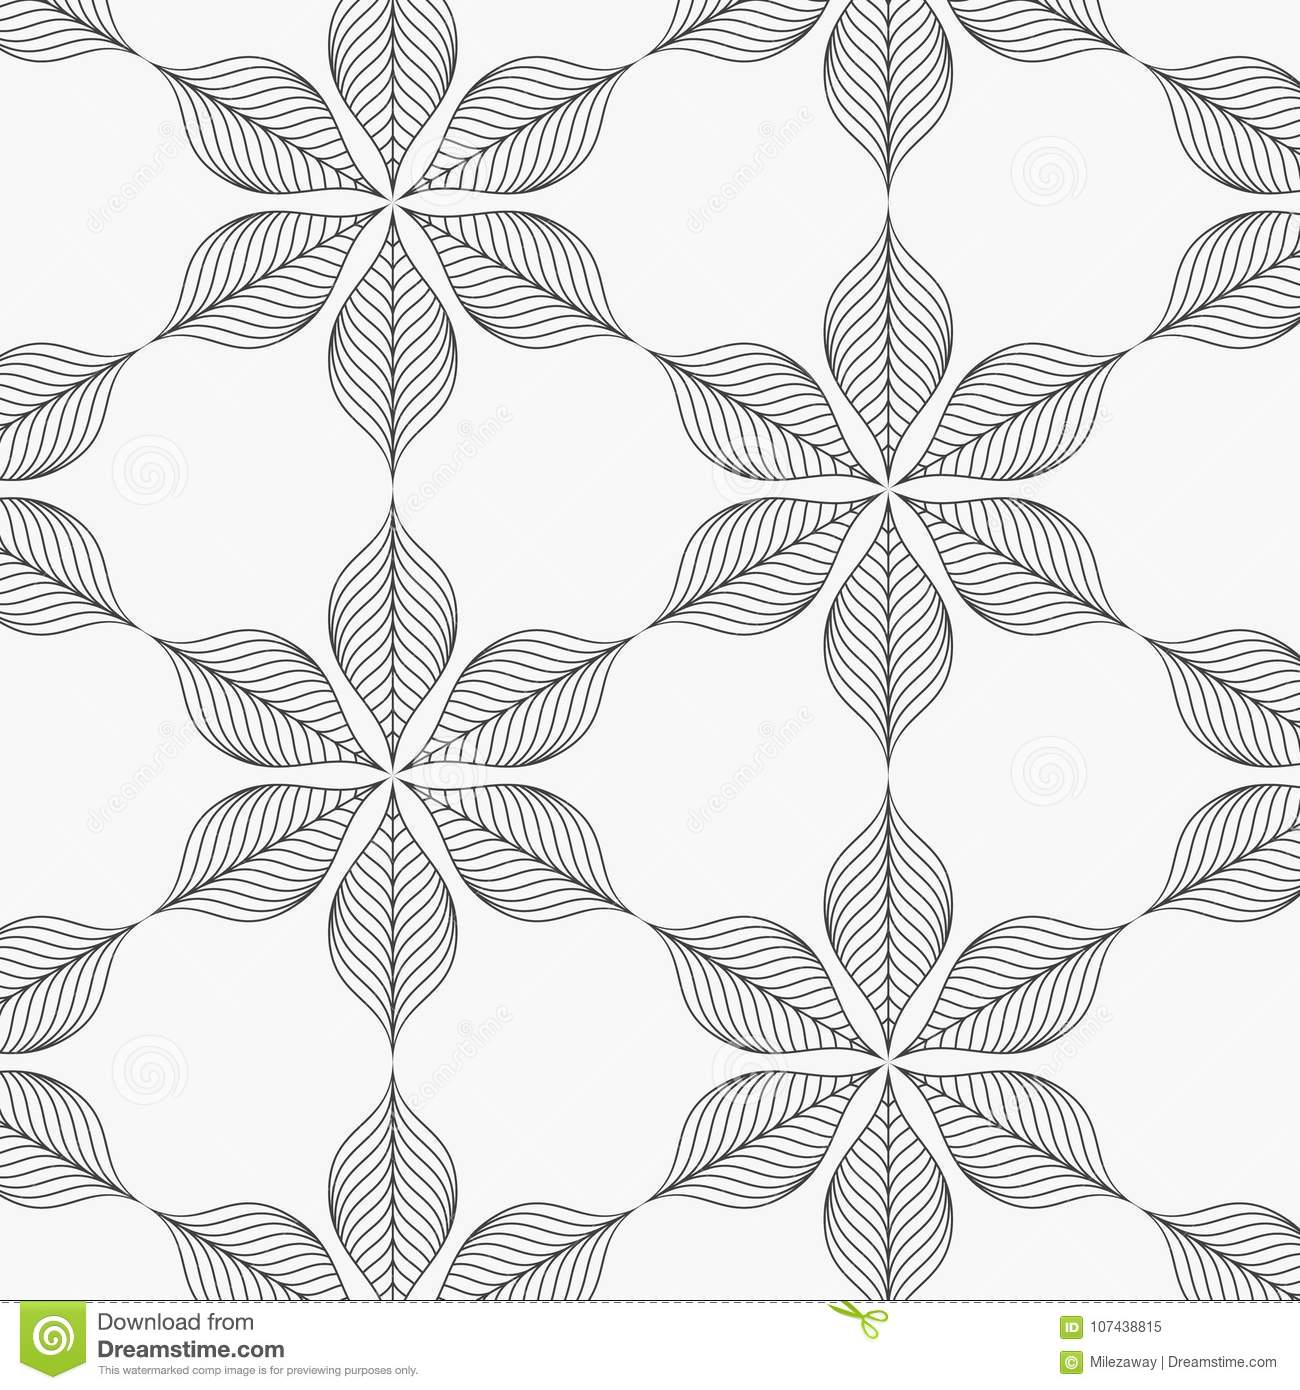 Linear Vector Pattern Repeating Abstract Leaves Gray Line Of Leaf Or Flower Floral